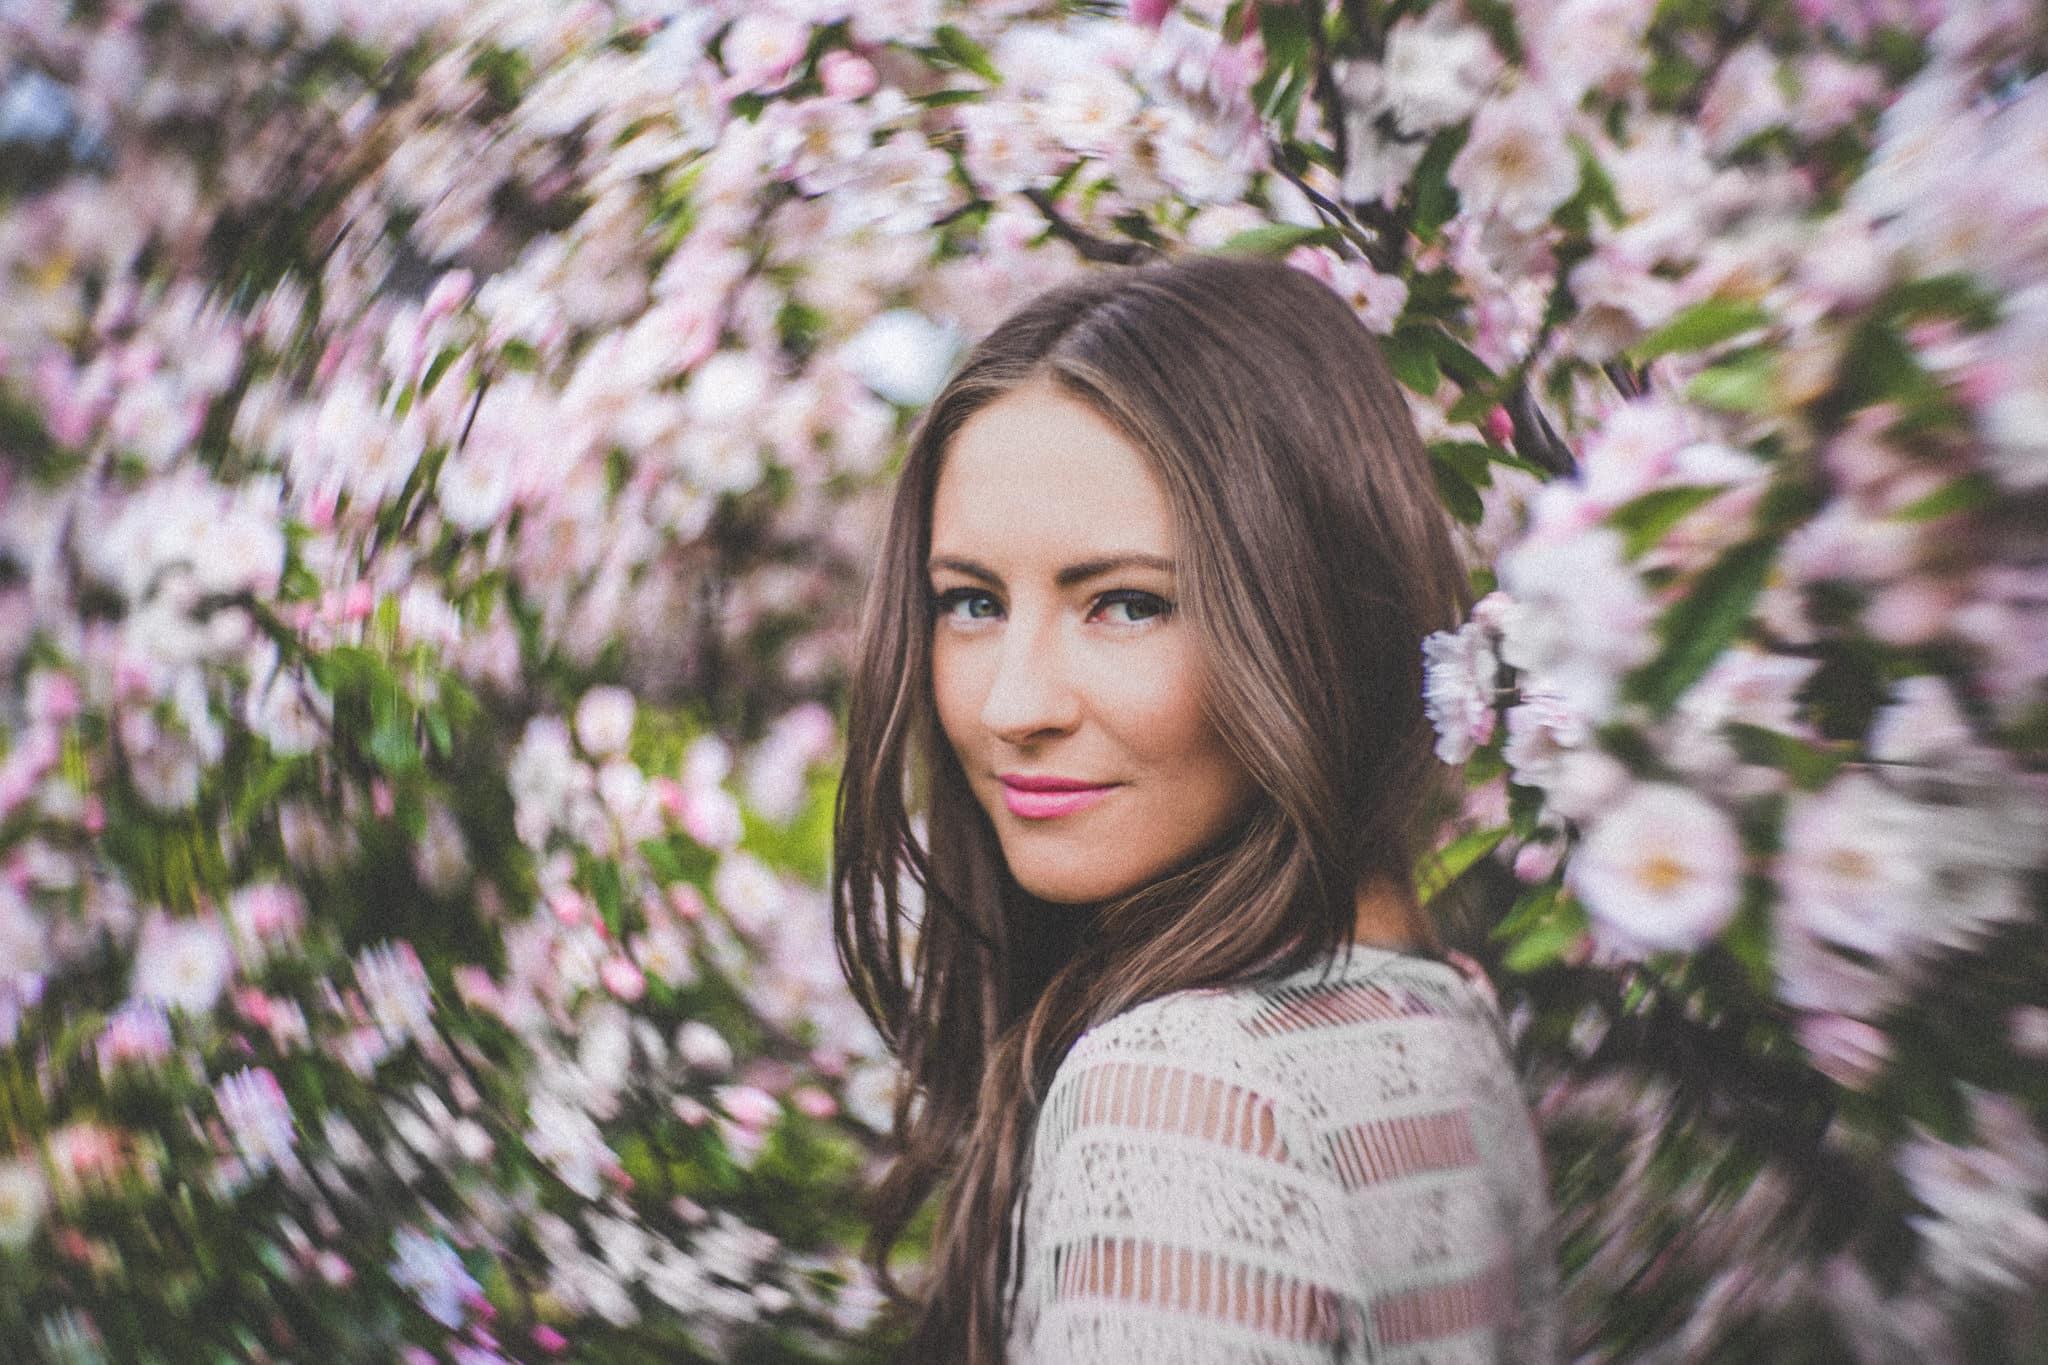 melbourne girl at commercial photoshoot iwith flowers and creative petzval lenses